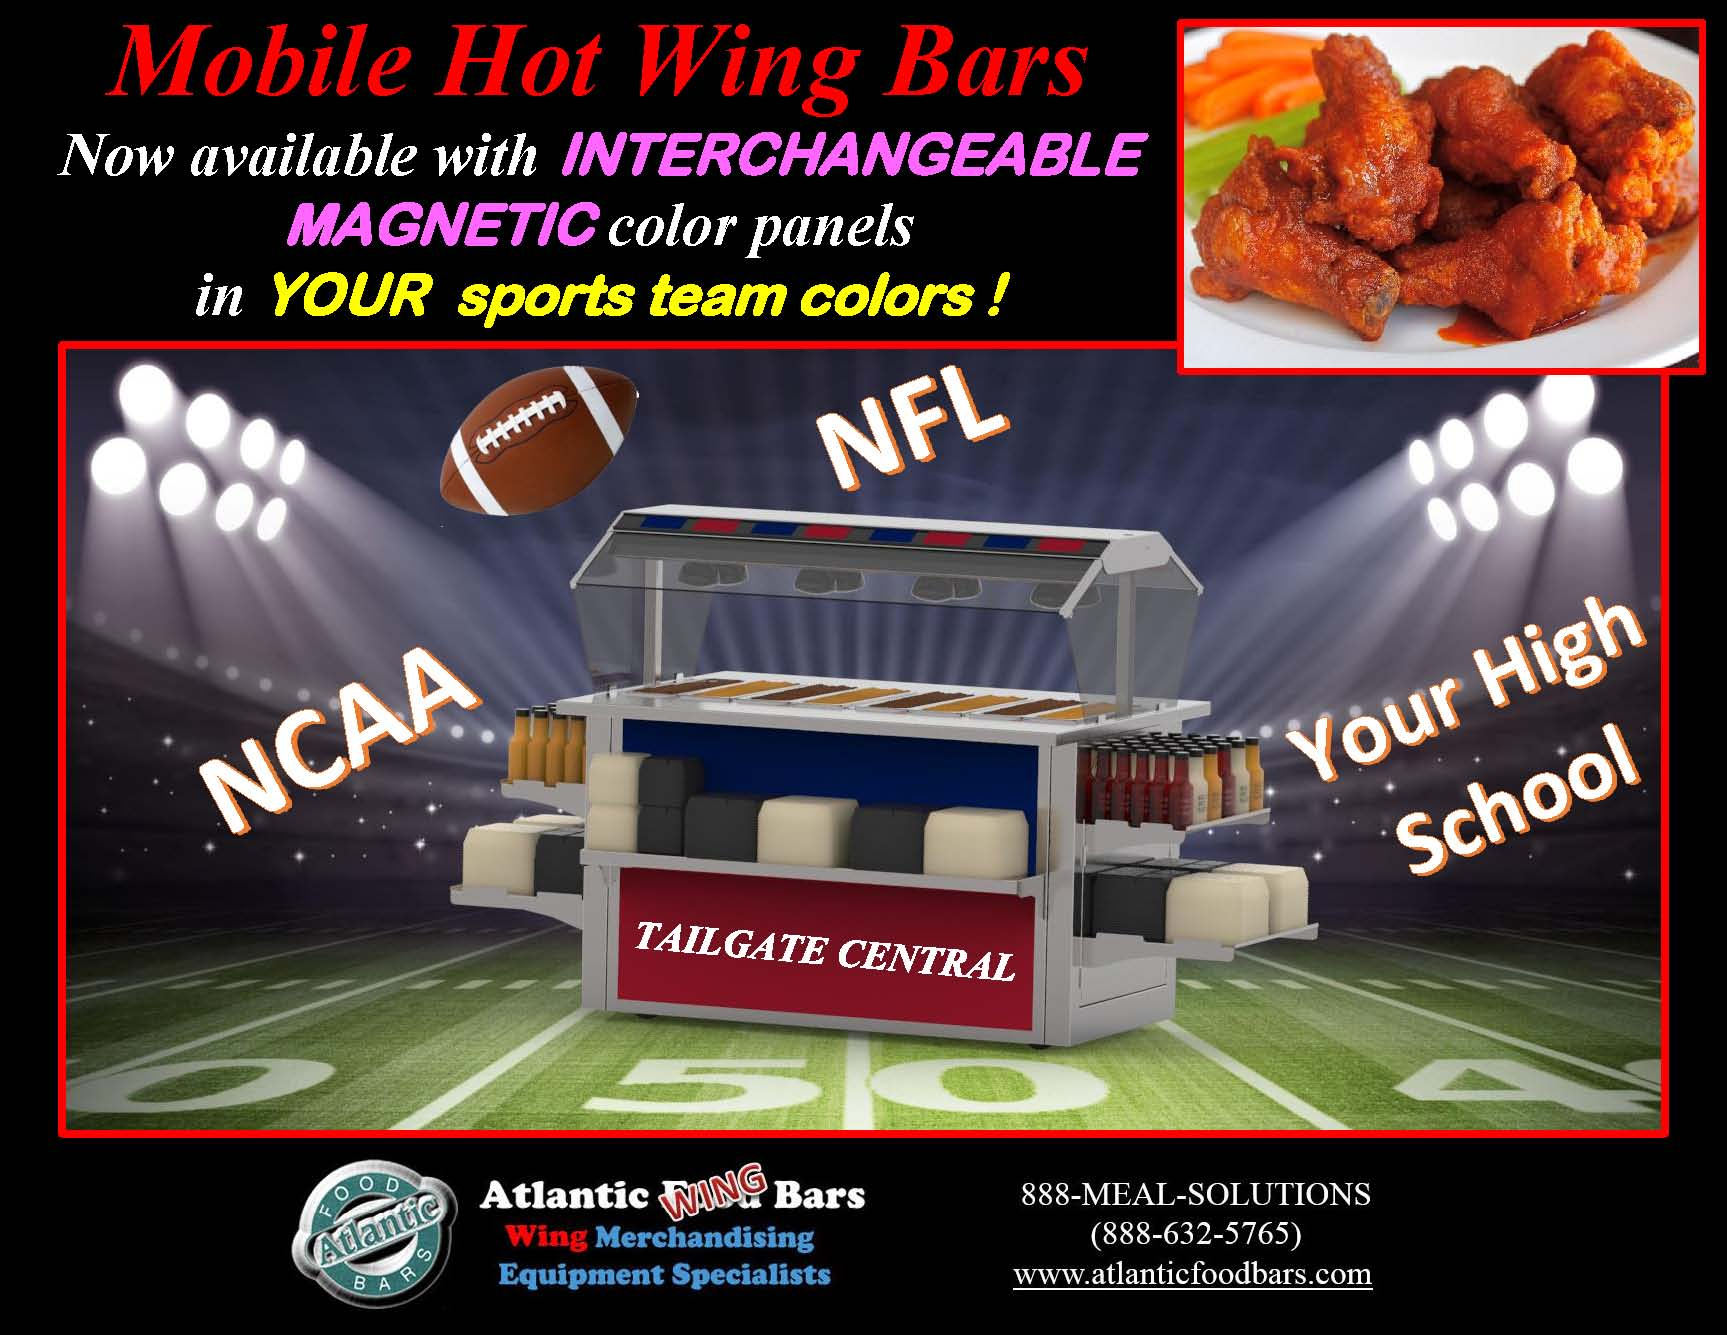 Atlantic Food Bars - Mobile Hot Wing Bars - Sports Edition - MHFC_Page_1